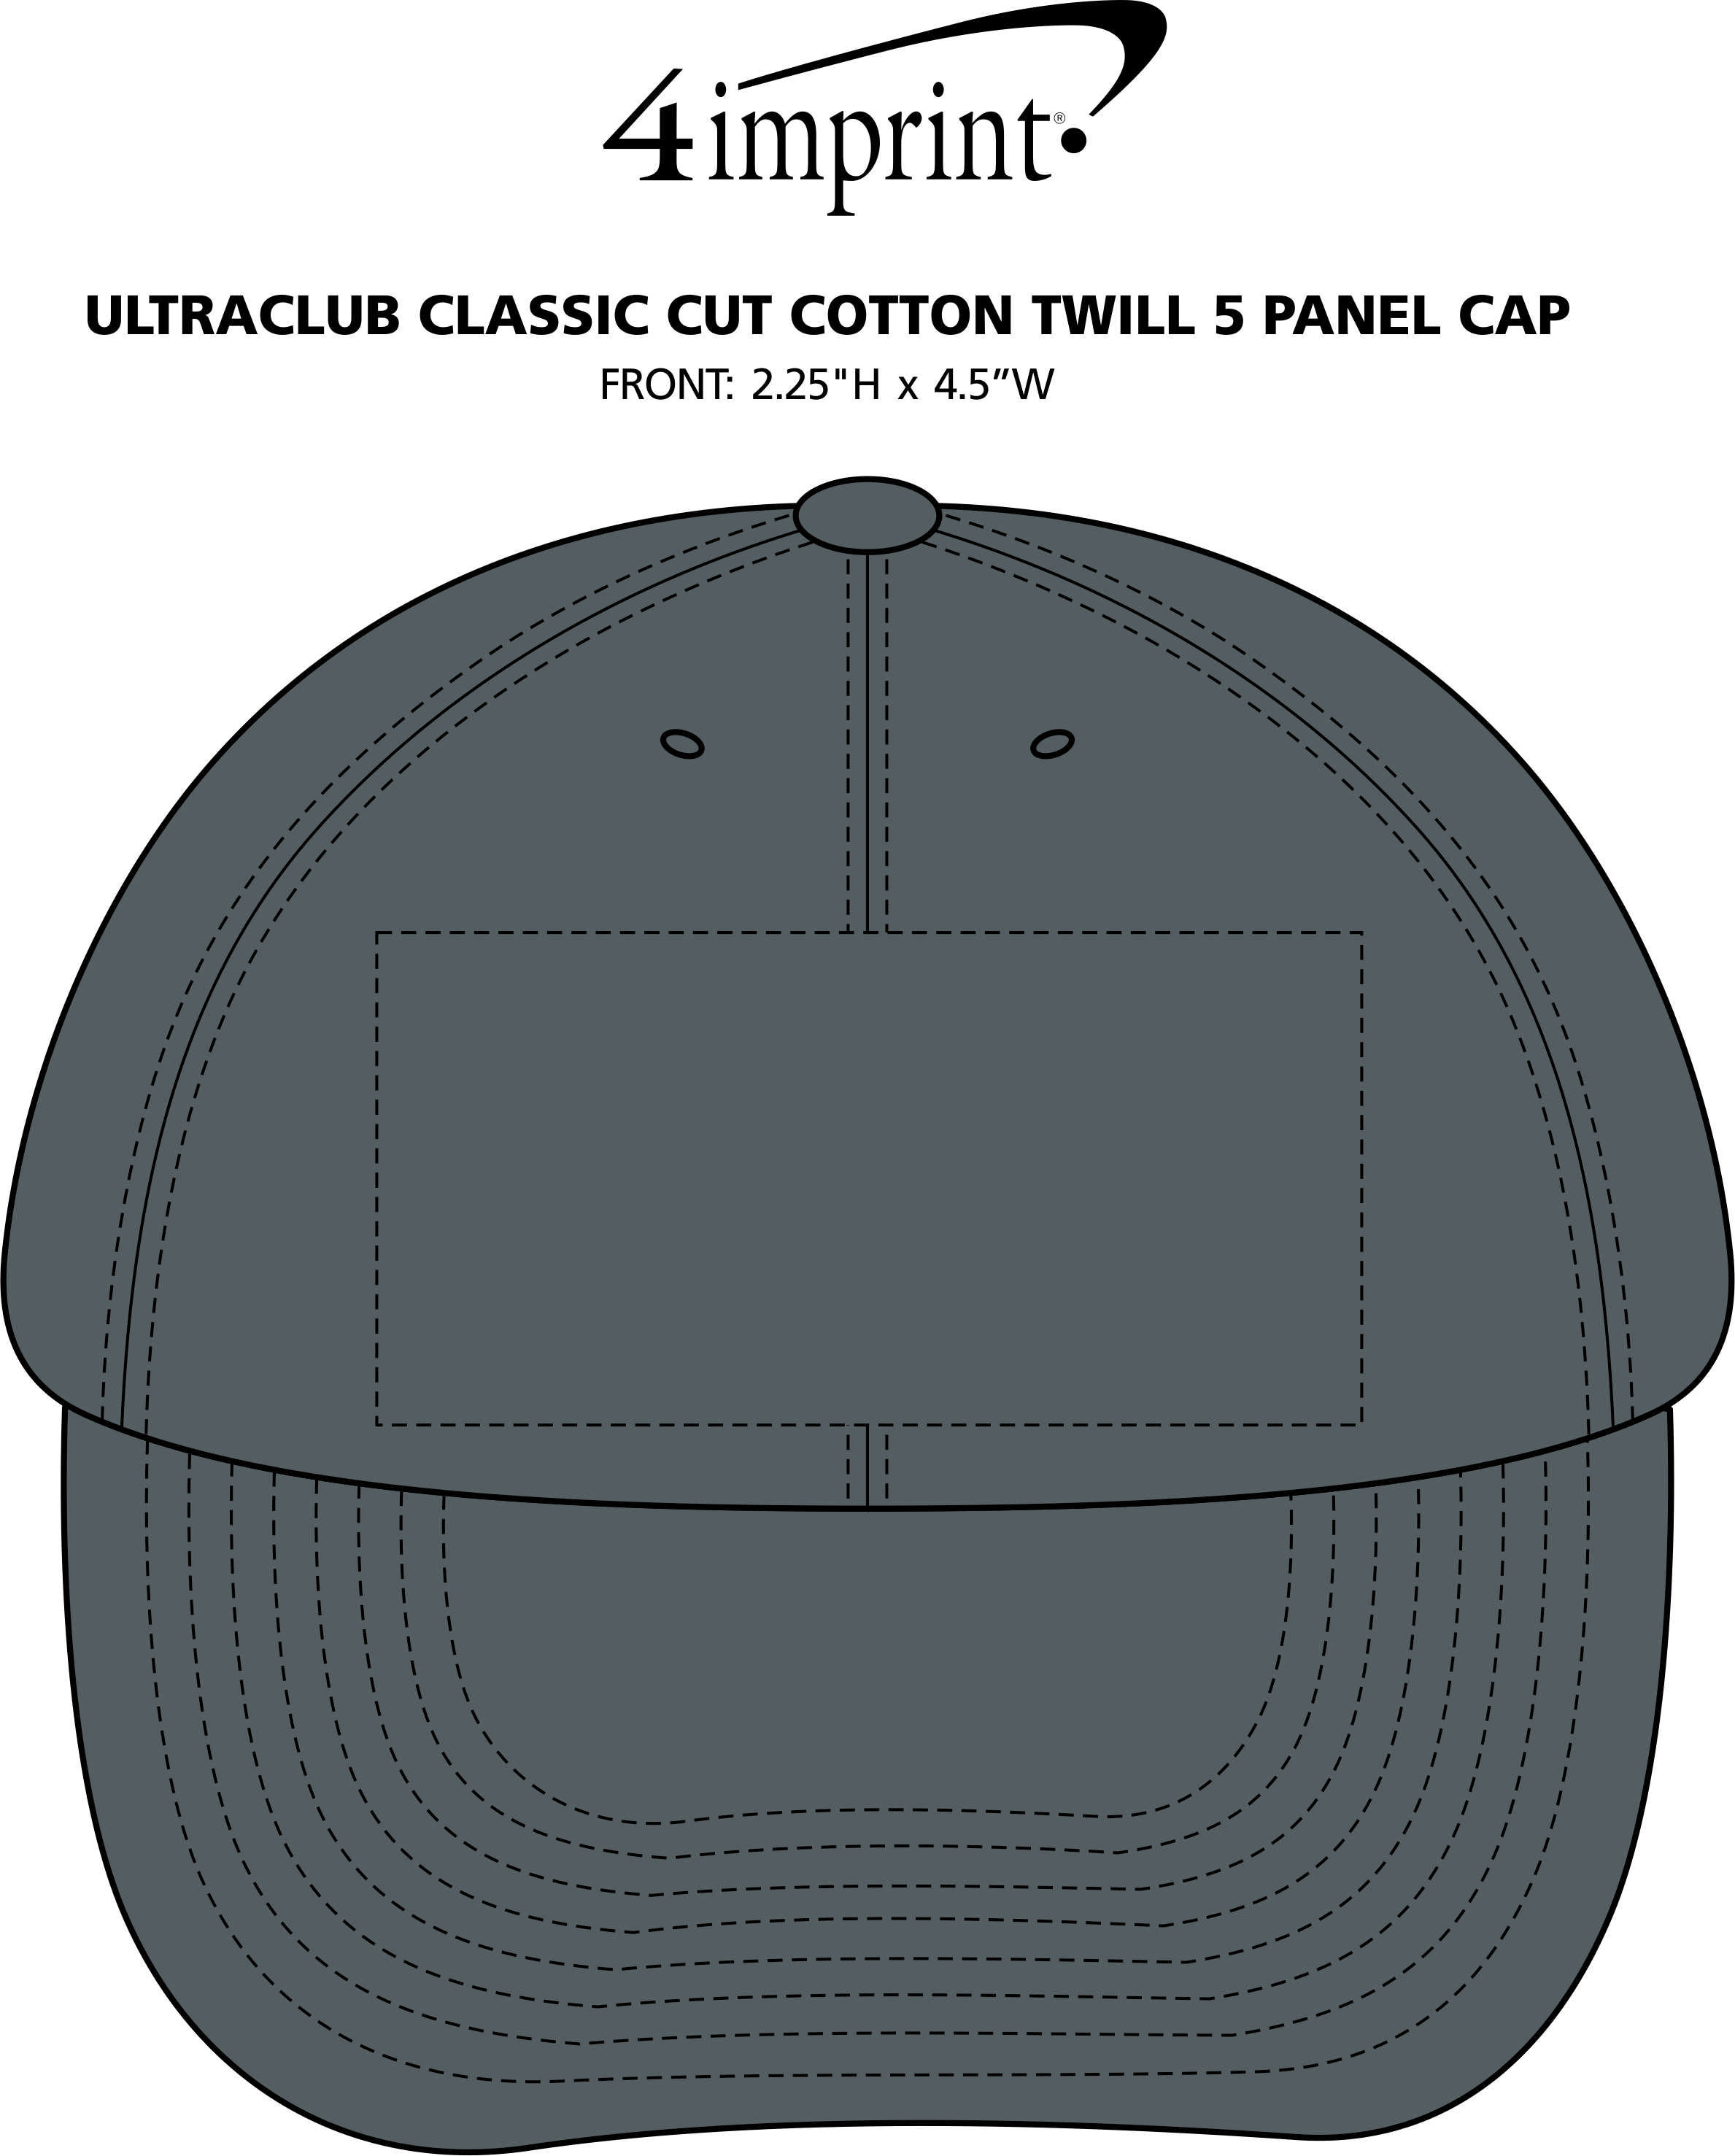 Imprint Area of UltraClub Classic Cut Cotton Twill 5 Panel Cap